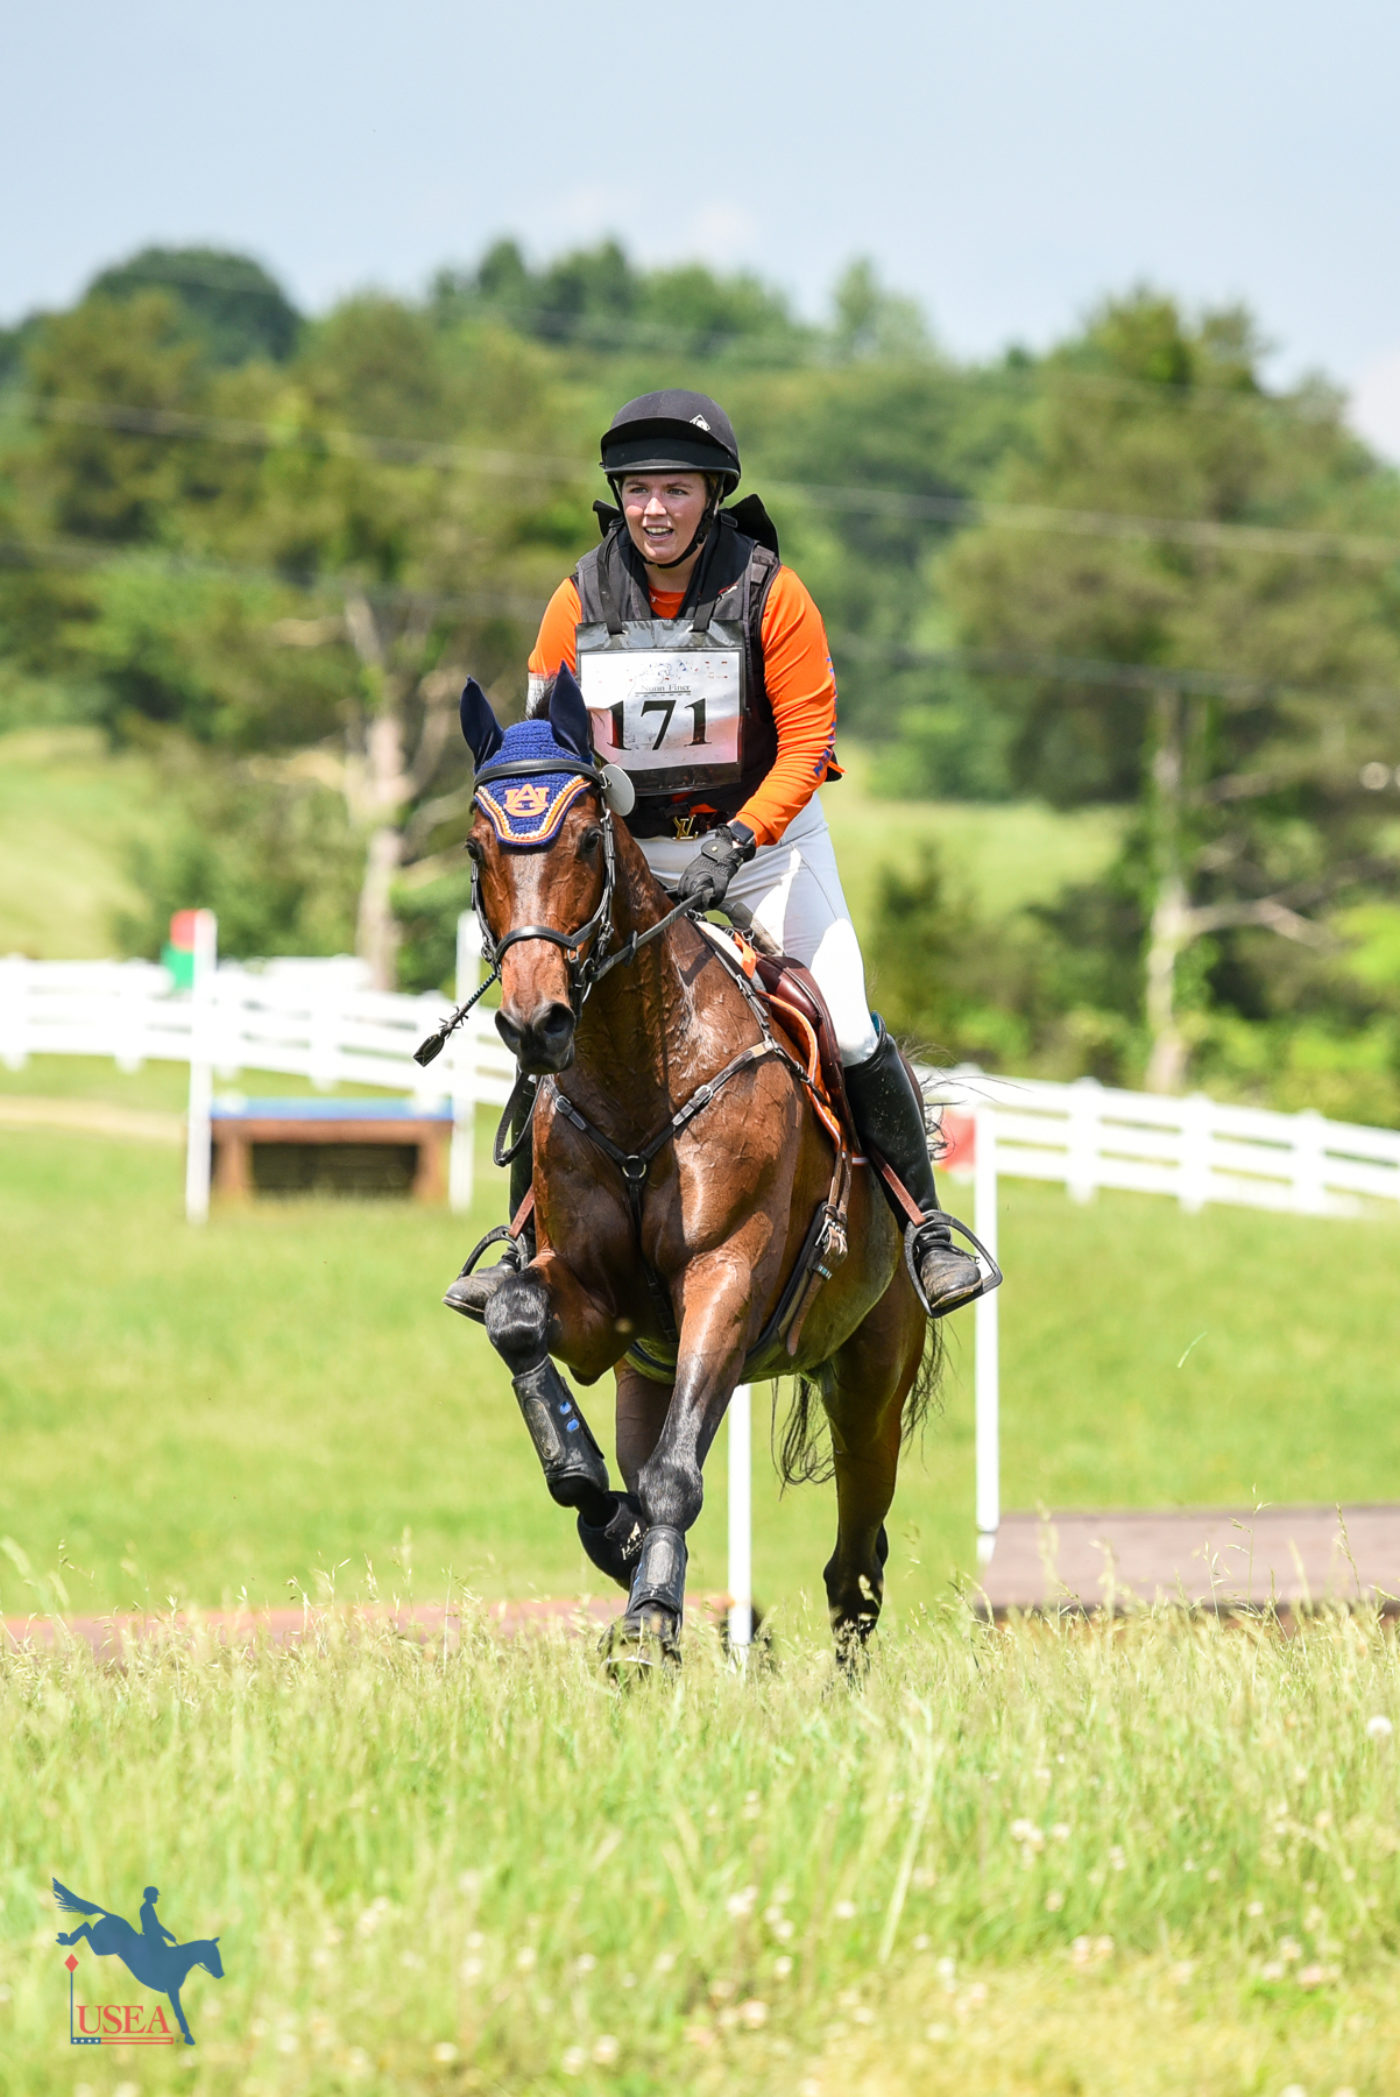 Auburn University's Lydia Kennedy and Double Dare headed for the last. USEA/Jessica Duffy Photo.